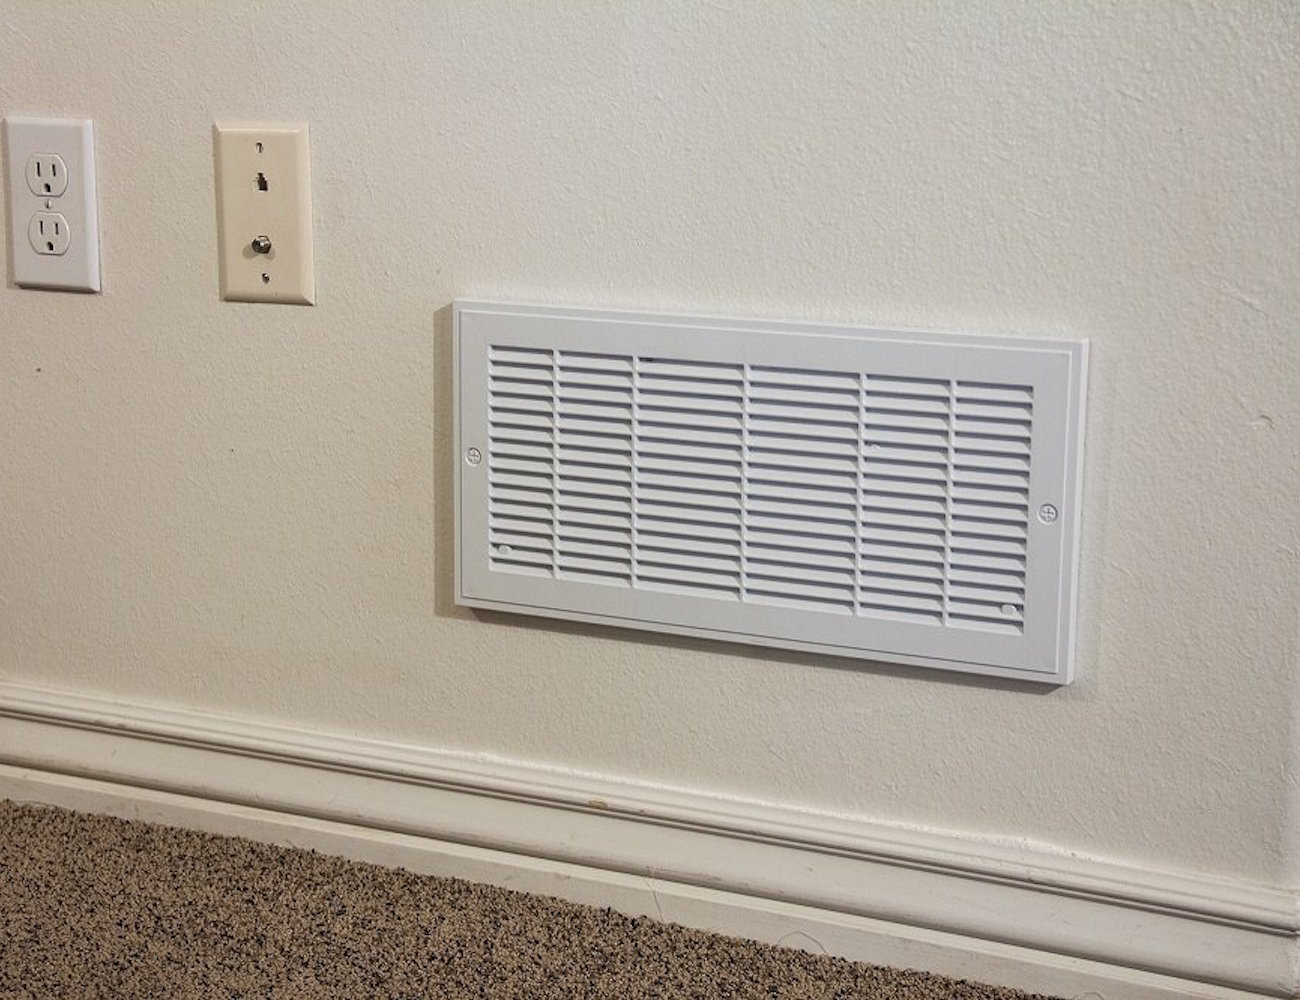 Air Vent Hidden Safe With Rfid Lock 187 Gadget Flow